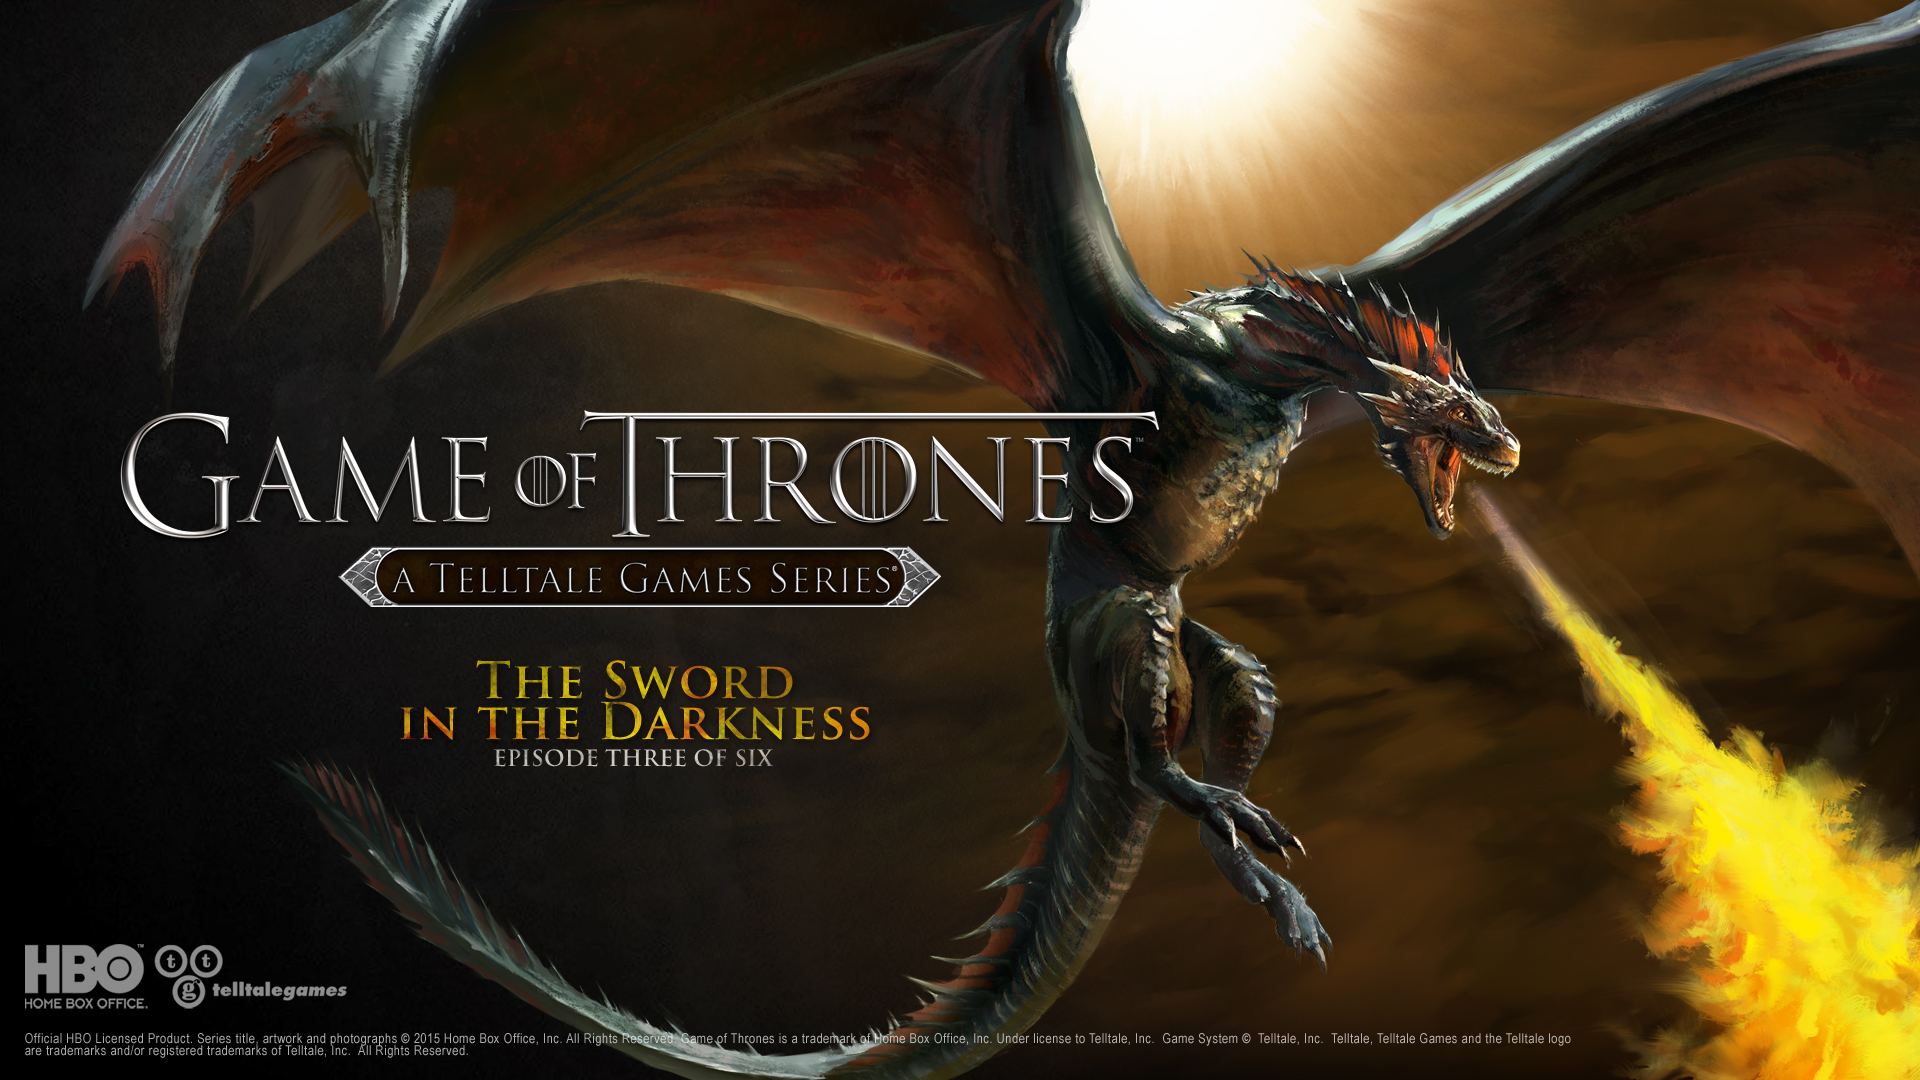 Game of Thrones: The Sword in the Darkness